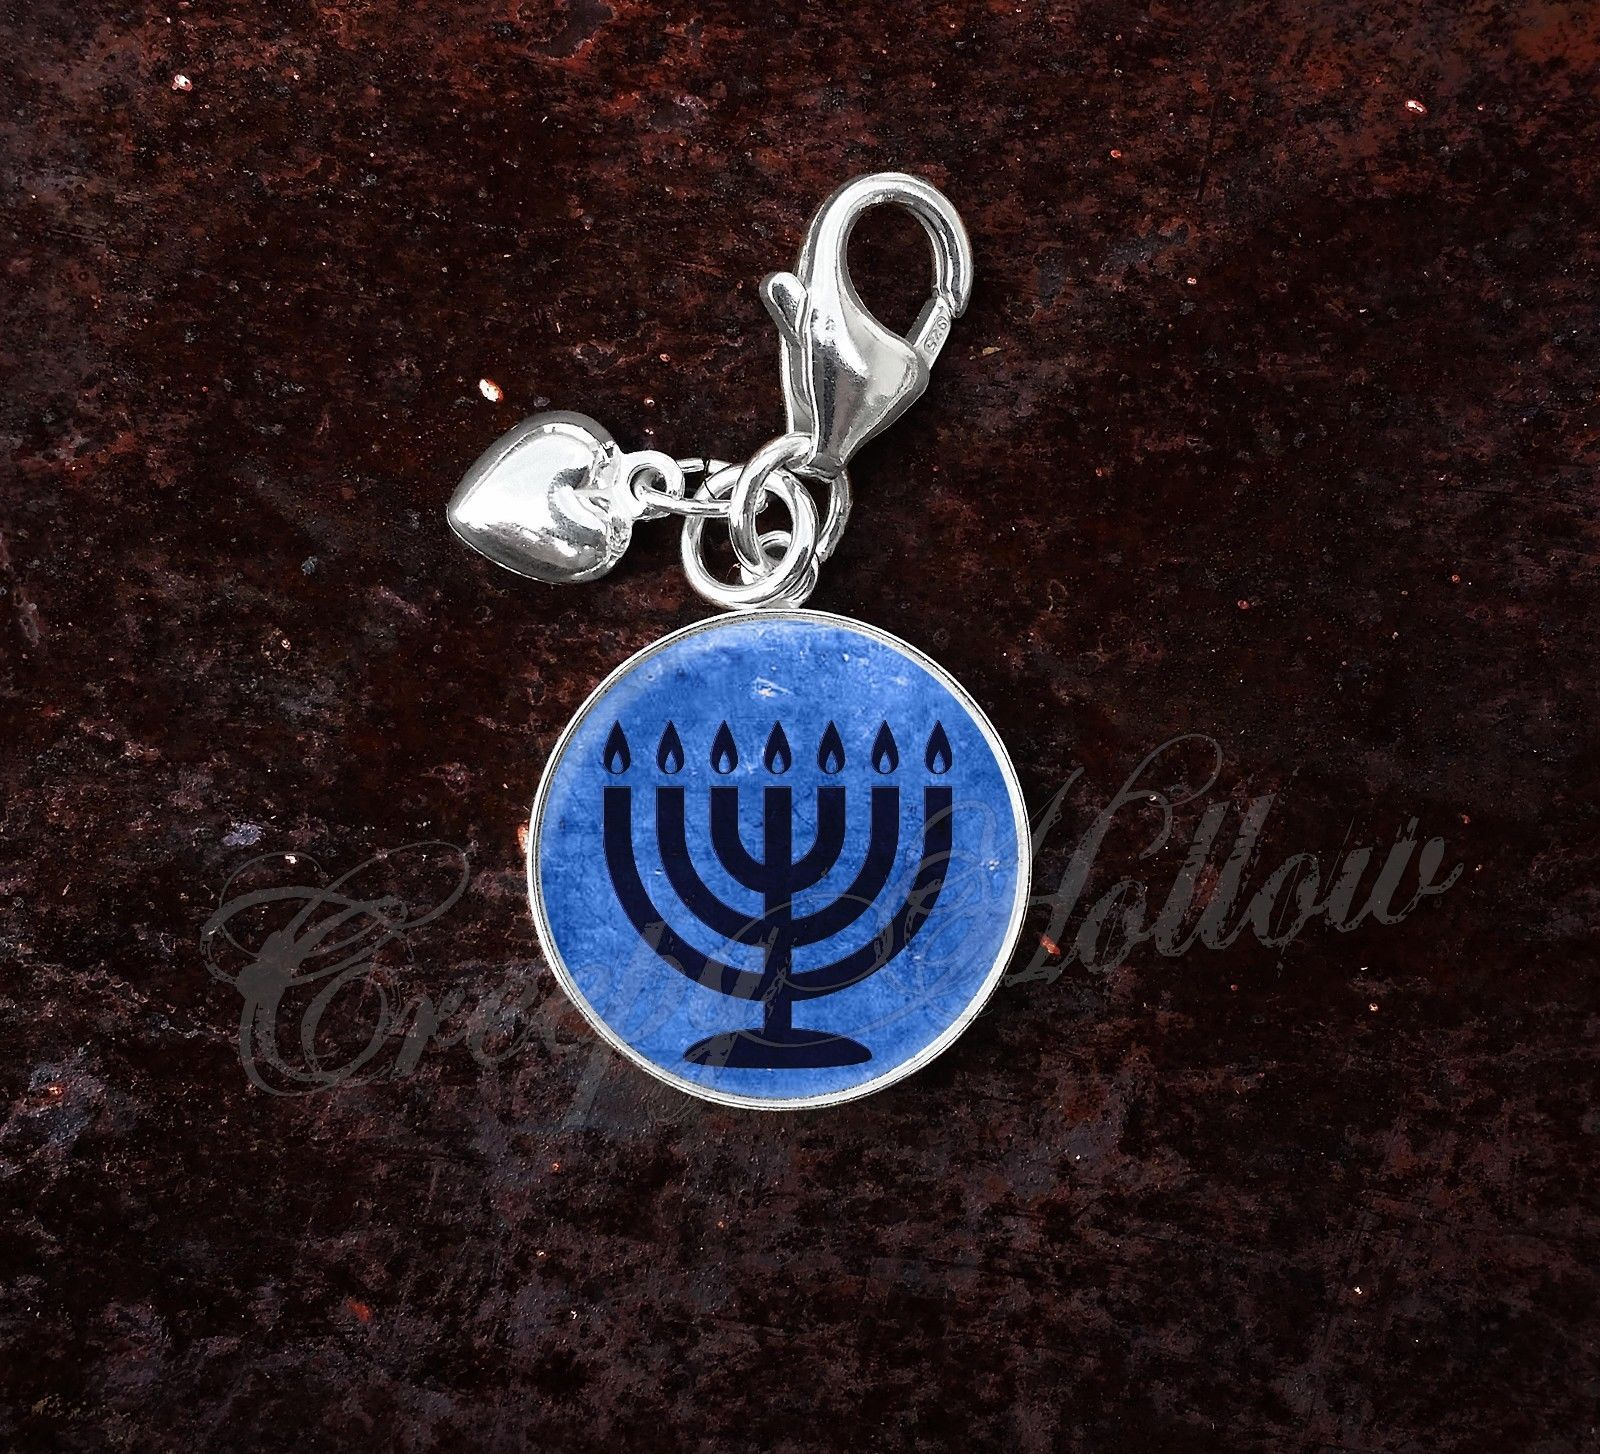 Primary image for 925 Sterling Silver Charm Blue 7 Branch Temple Menorah